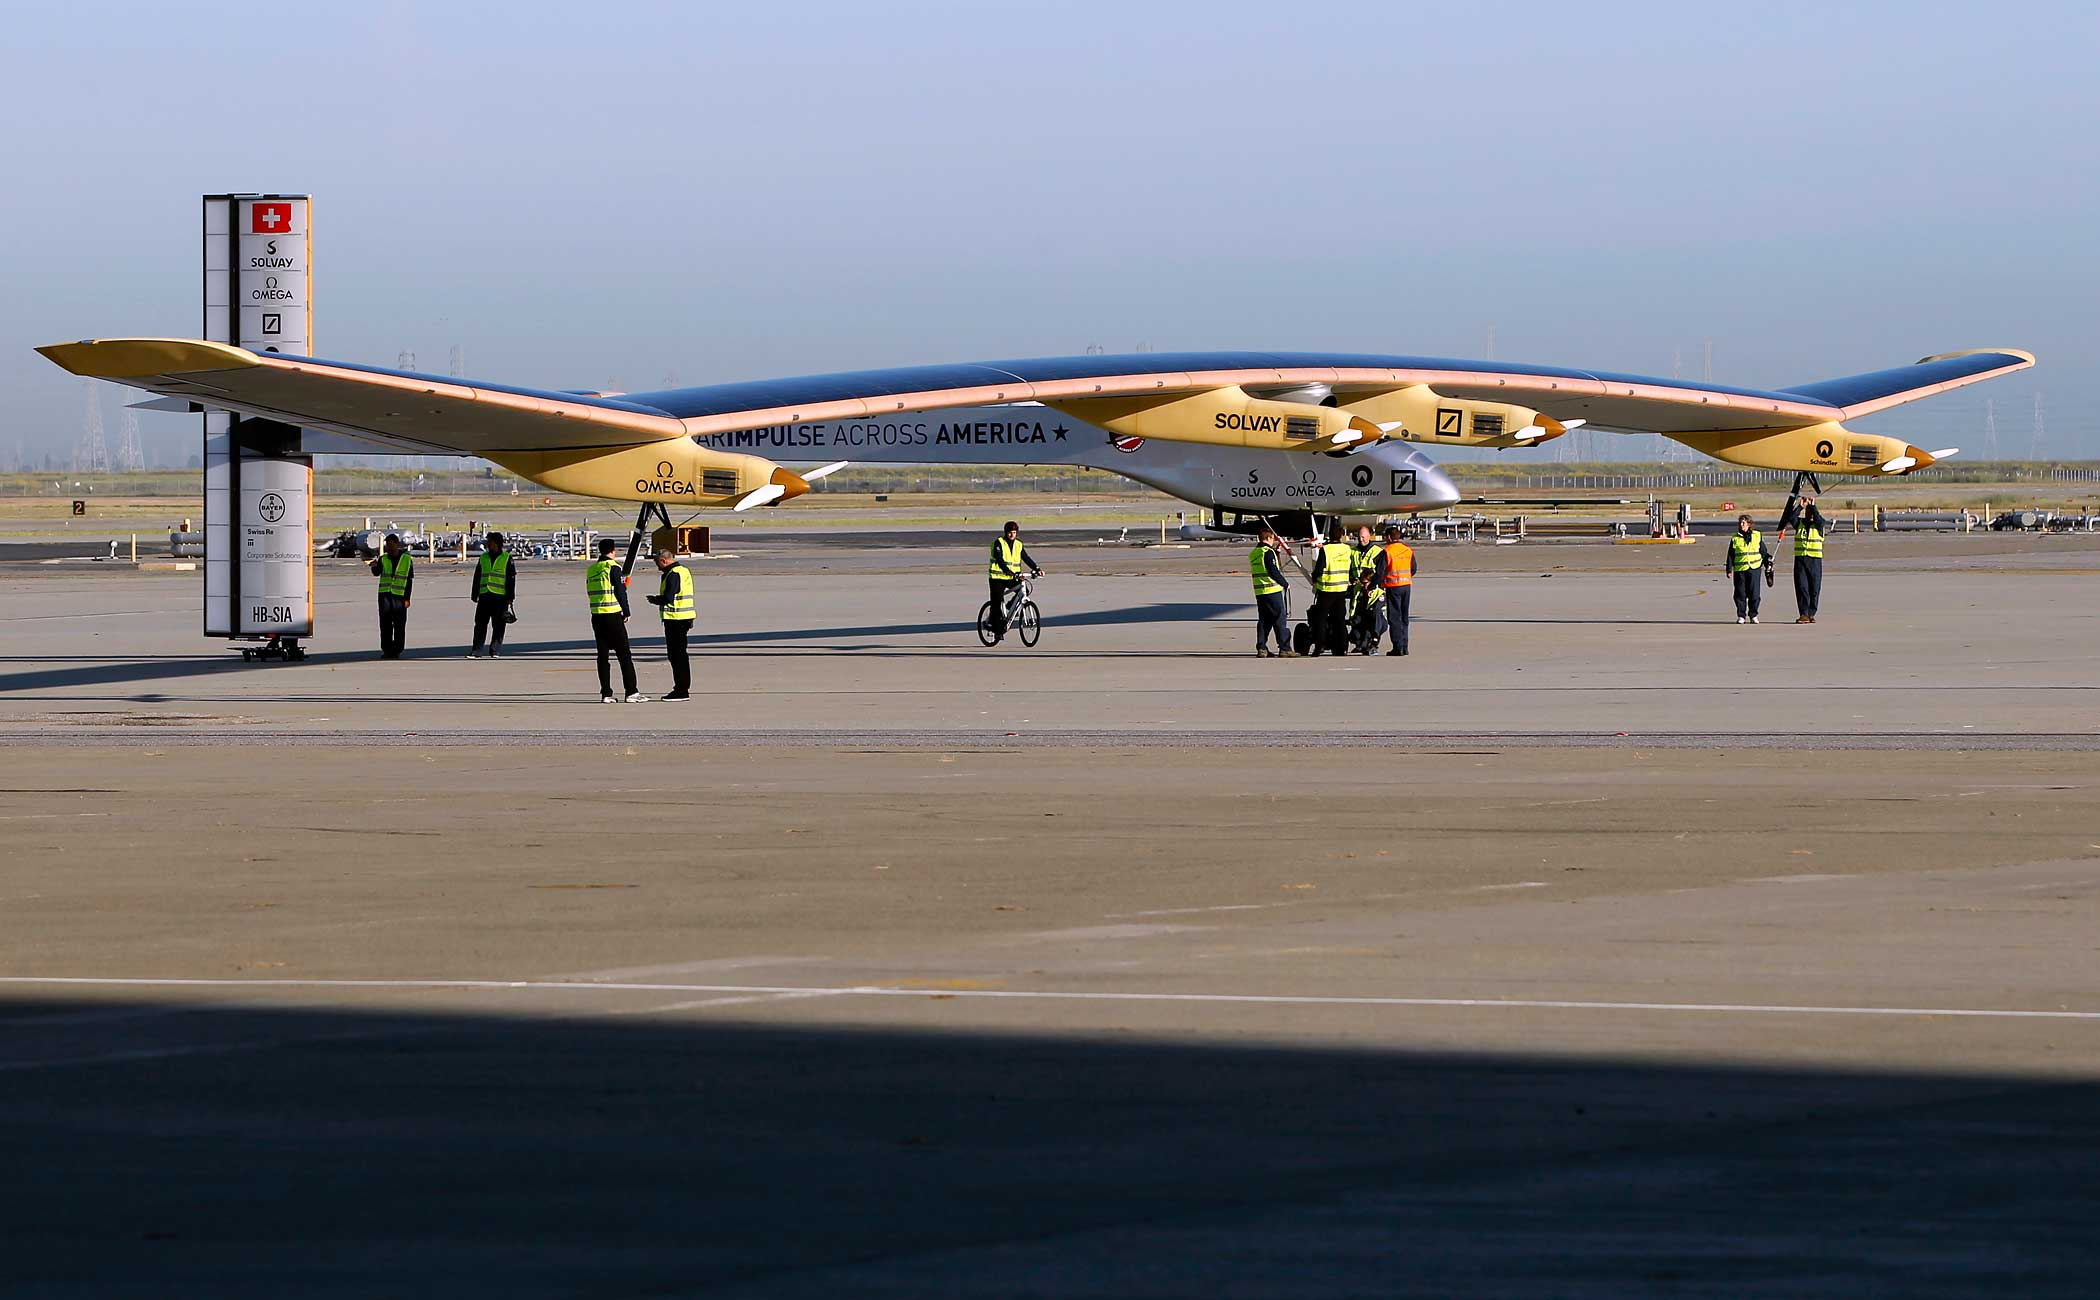 Crew members walk the Solar Impulse to its hangar following a test flight at Moffett Field in Mountain View, California April 19, 2013.